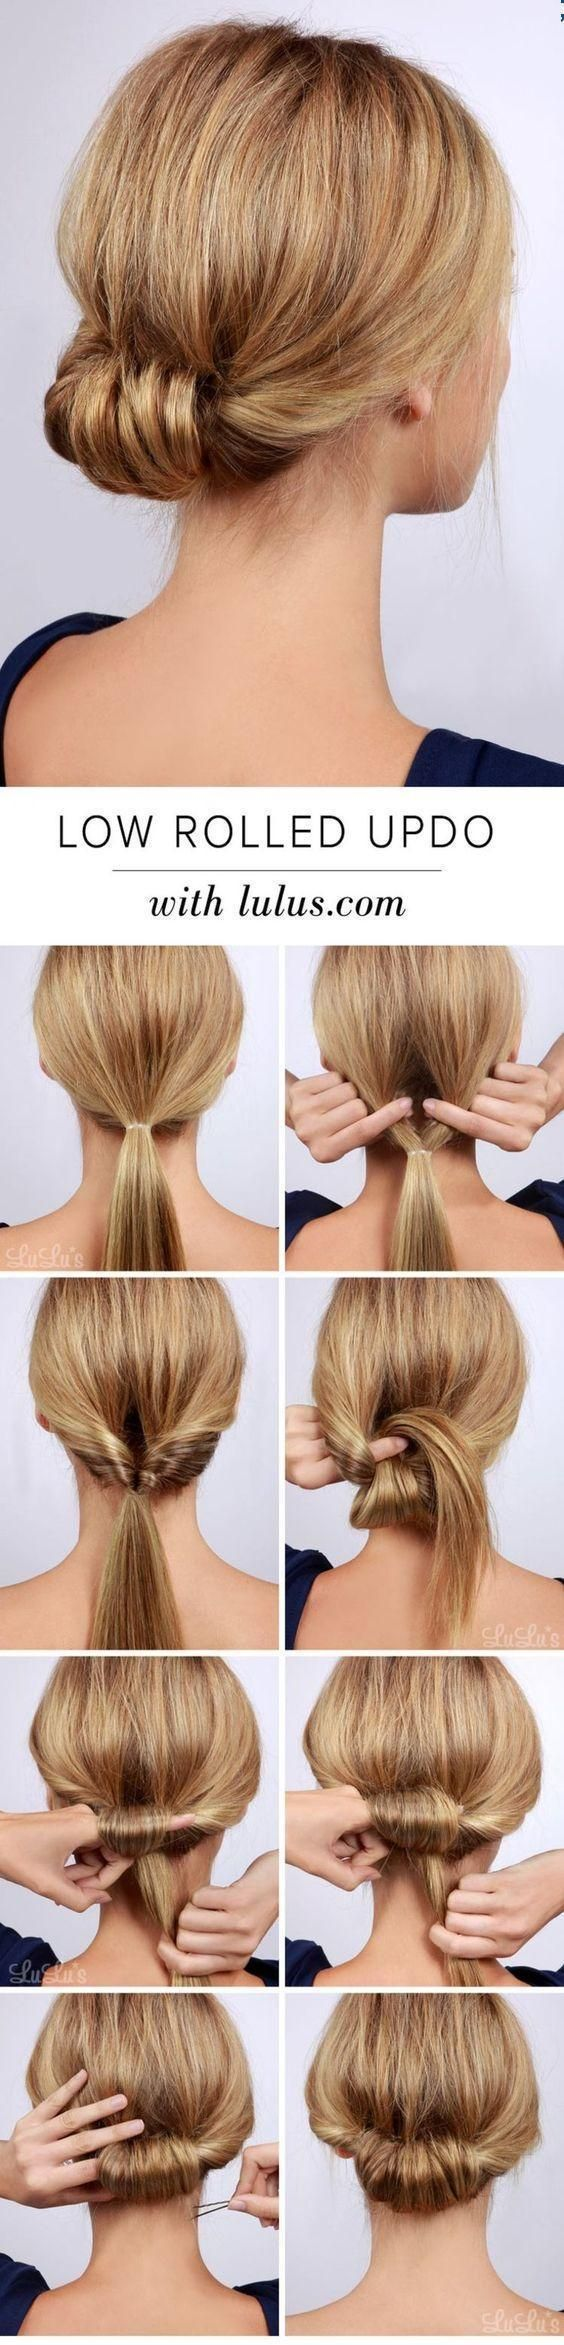 Low rolled updo easy hair ideas pinterest low rolled updo